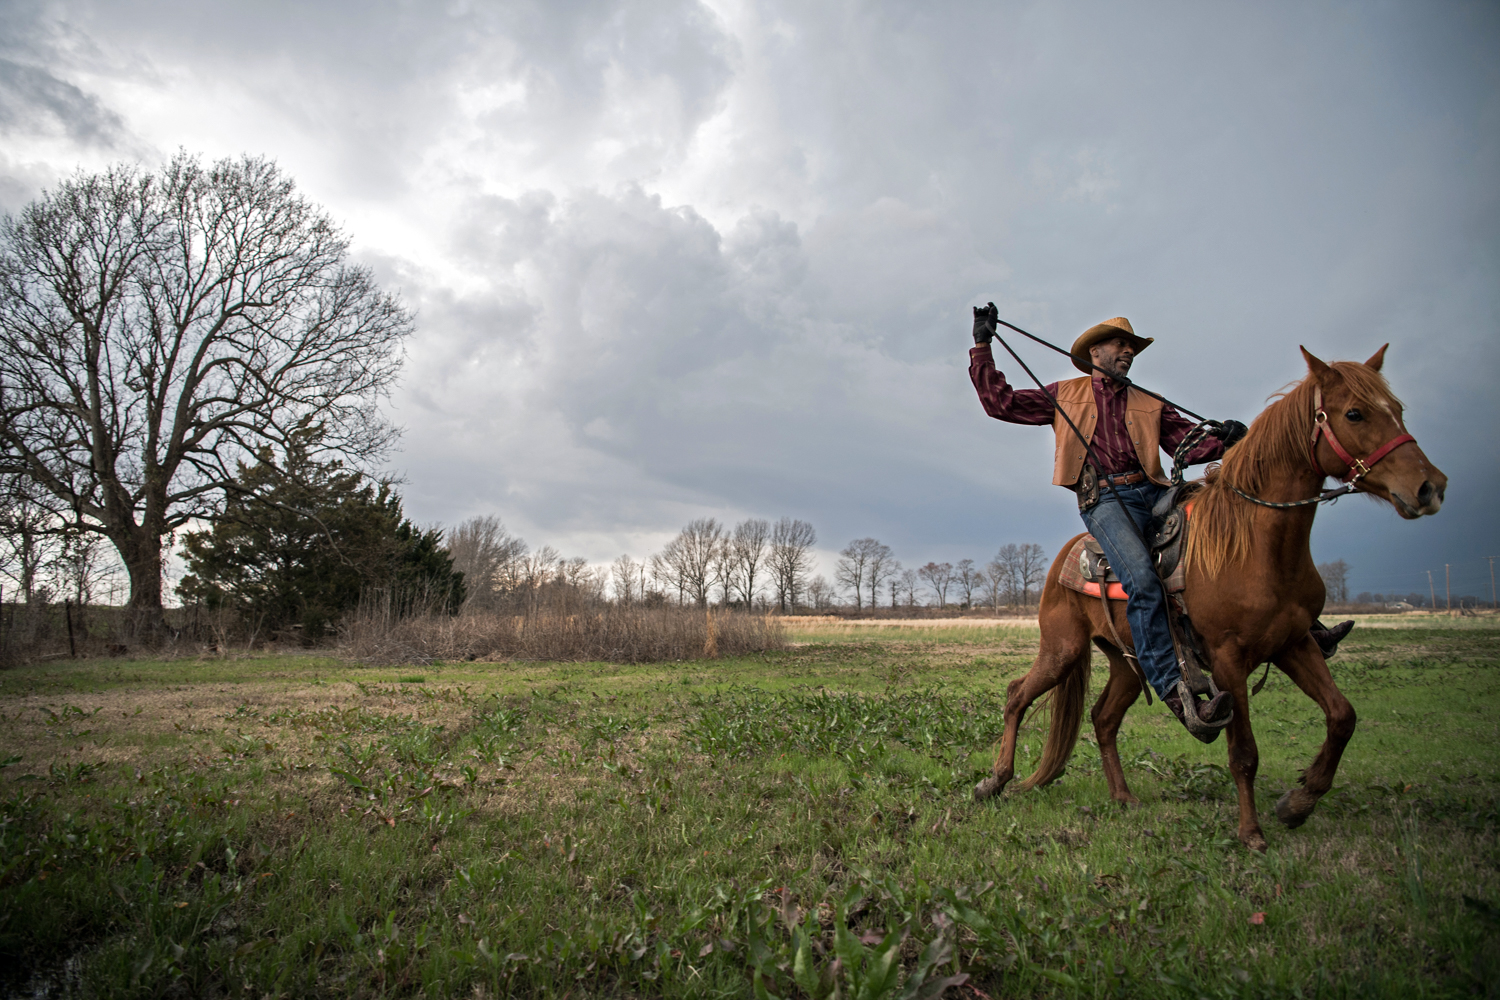 Moonie breaks a horse for the first time just before a looming storm near Cleveland, Mississippi.